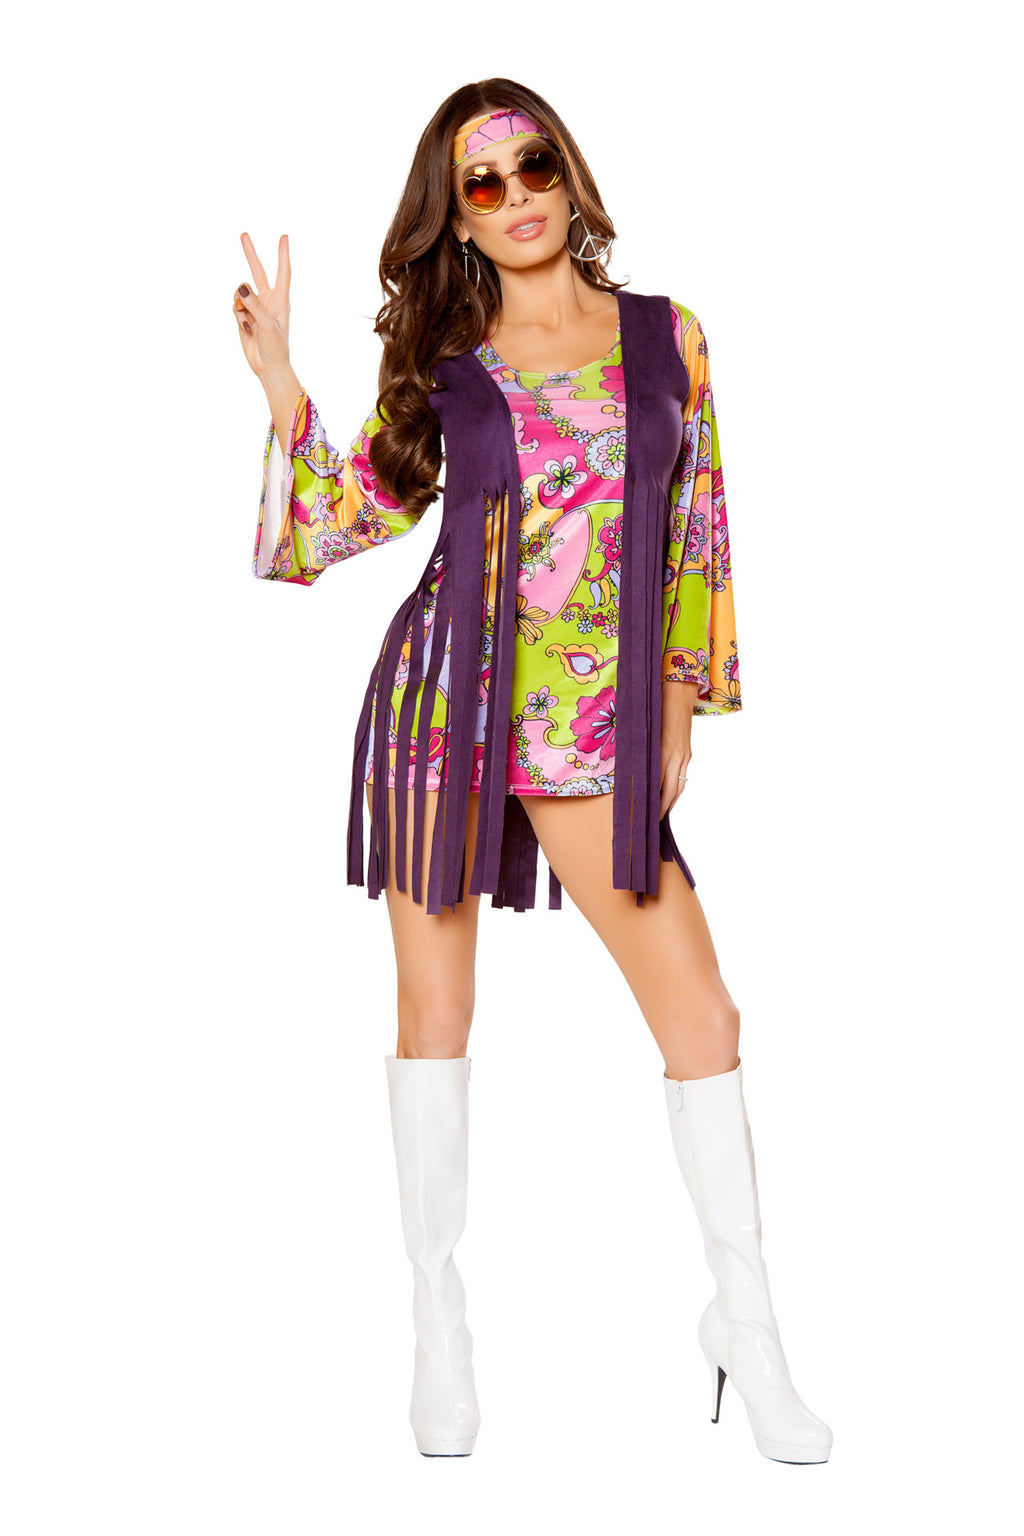 3-PC-Hippie-Paisley-Mini-Dress-w/-Purple-Fringe-Vest-&-Headband-Party-Costume-